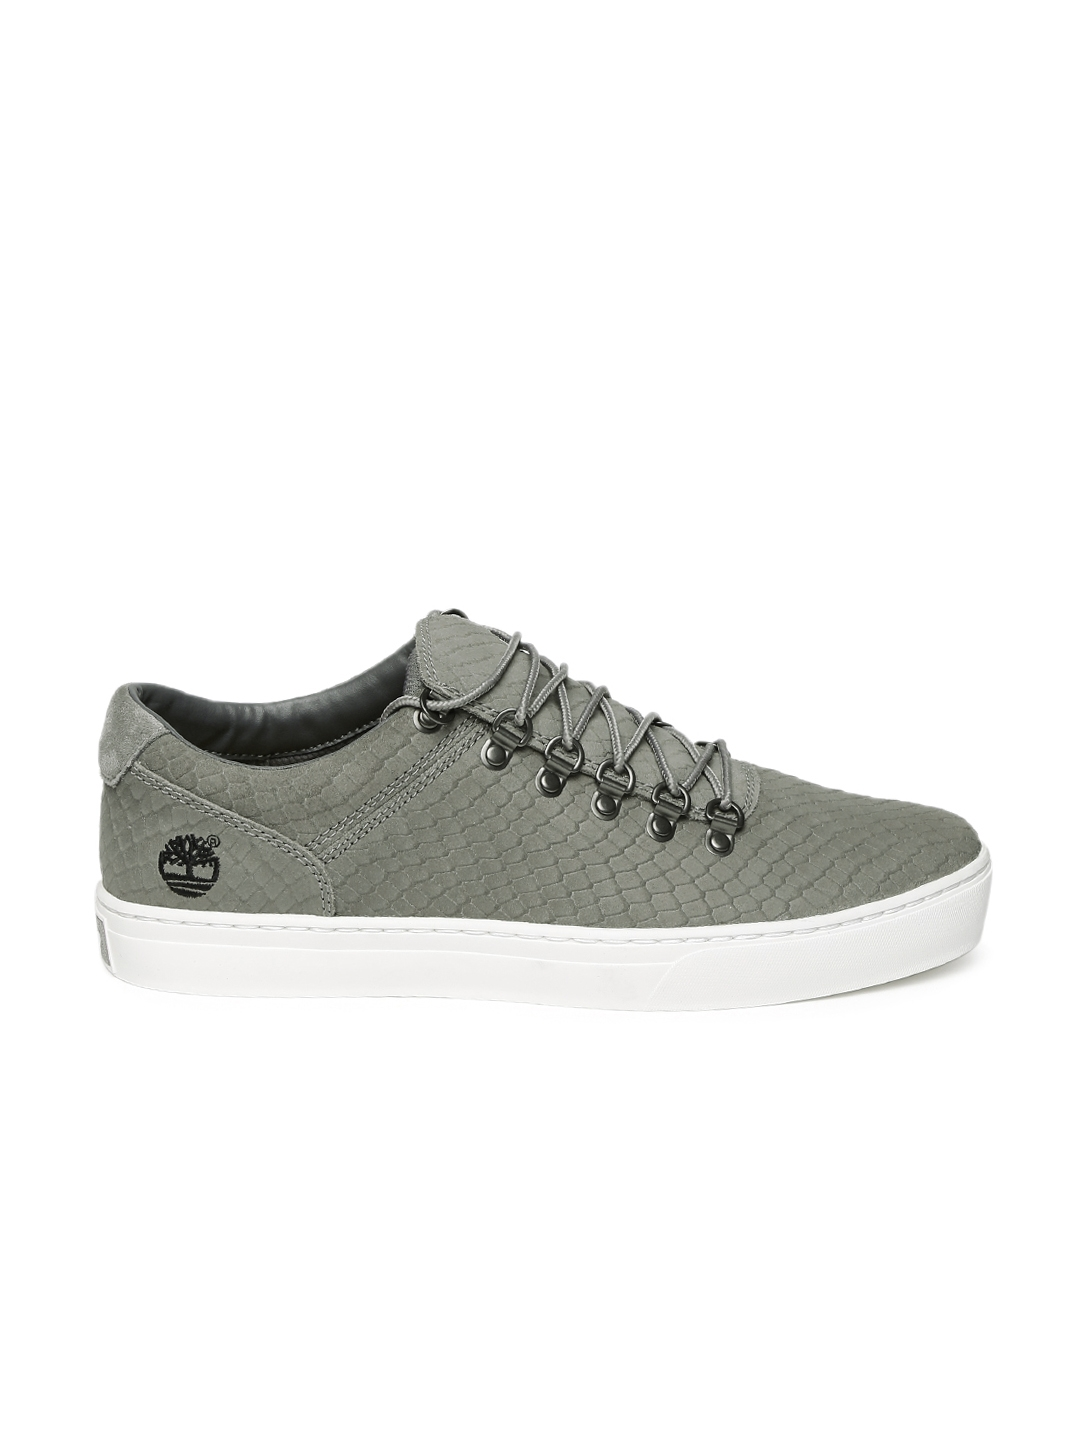 a5b2586d6dfe Buy Timberland Men Grey Adv2.0 Cupalpox Leather Sneakers - Casual ...